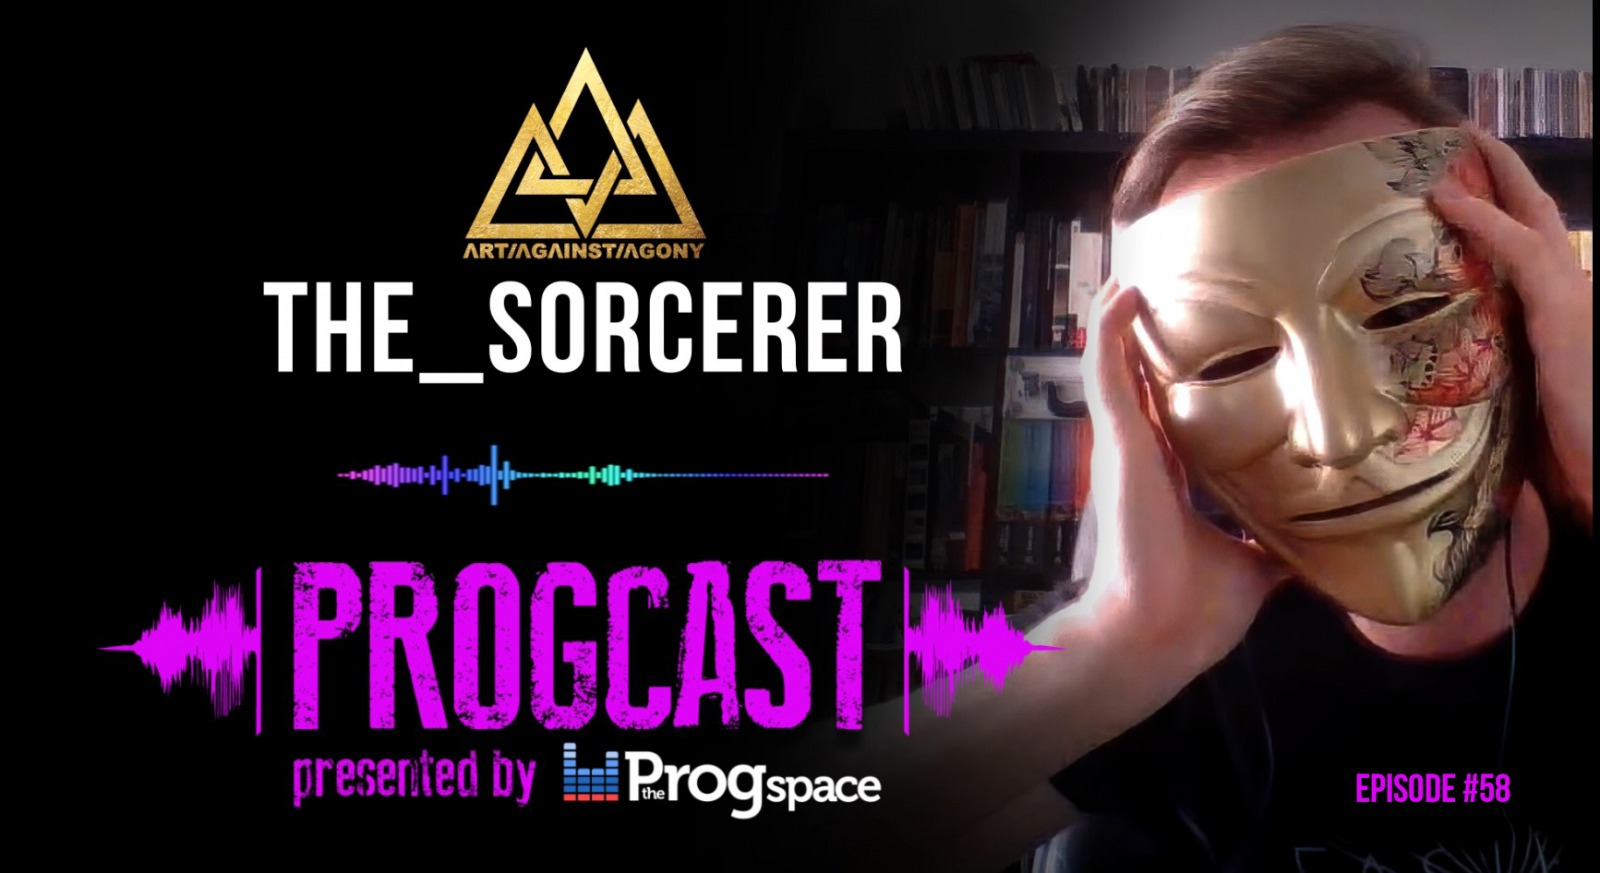 Progcast 058: the_sorcerer (Art Against Agony)